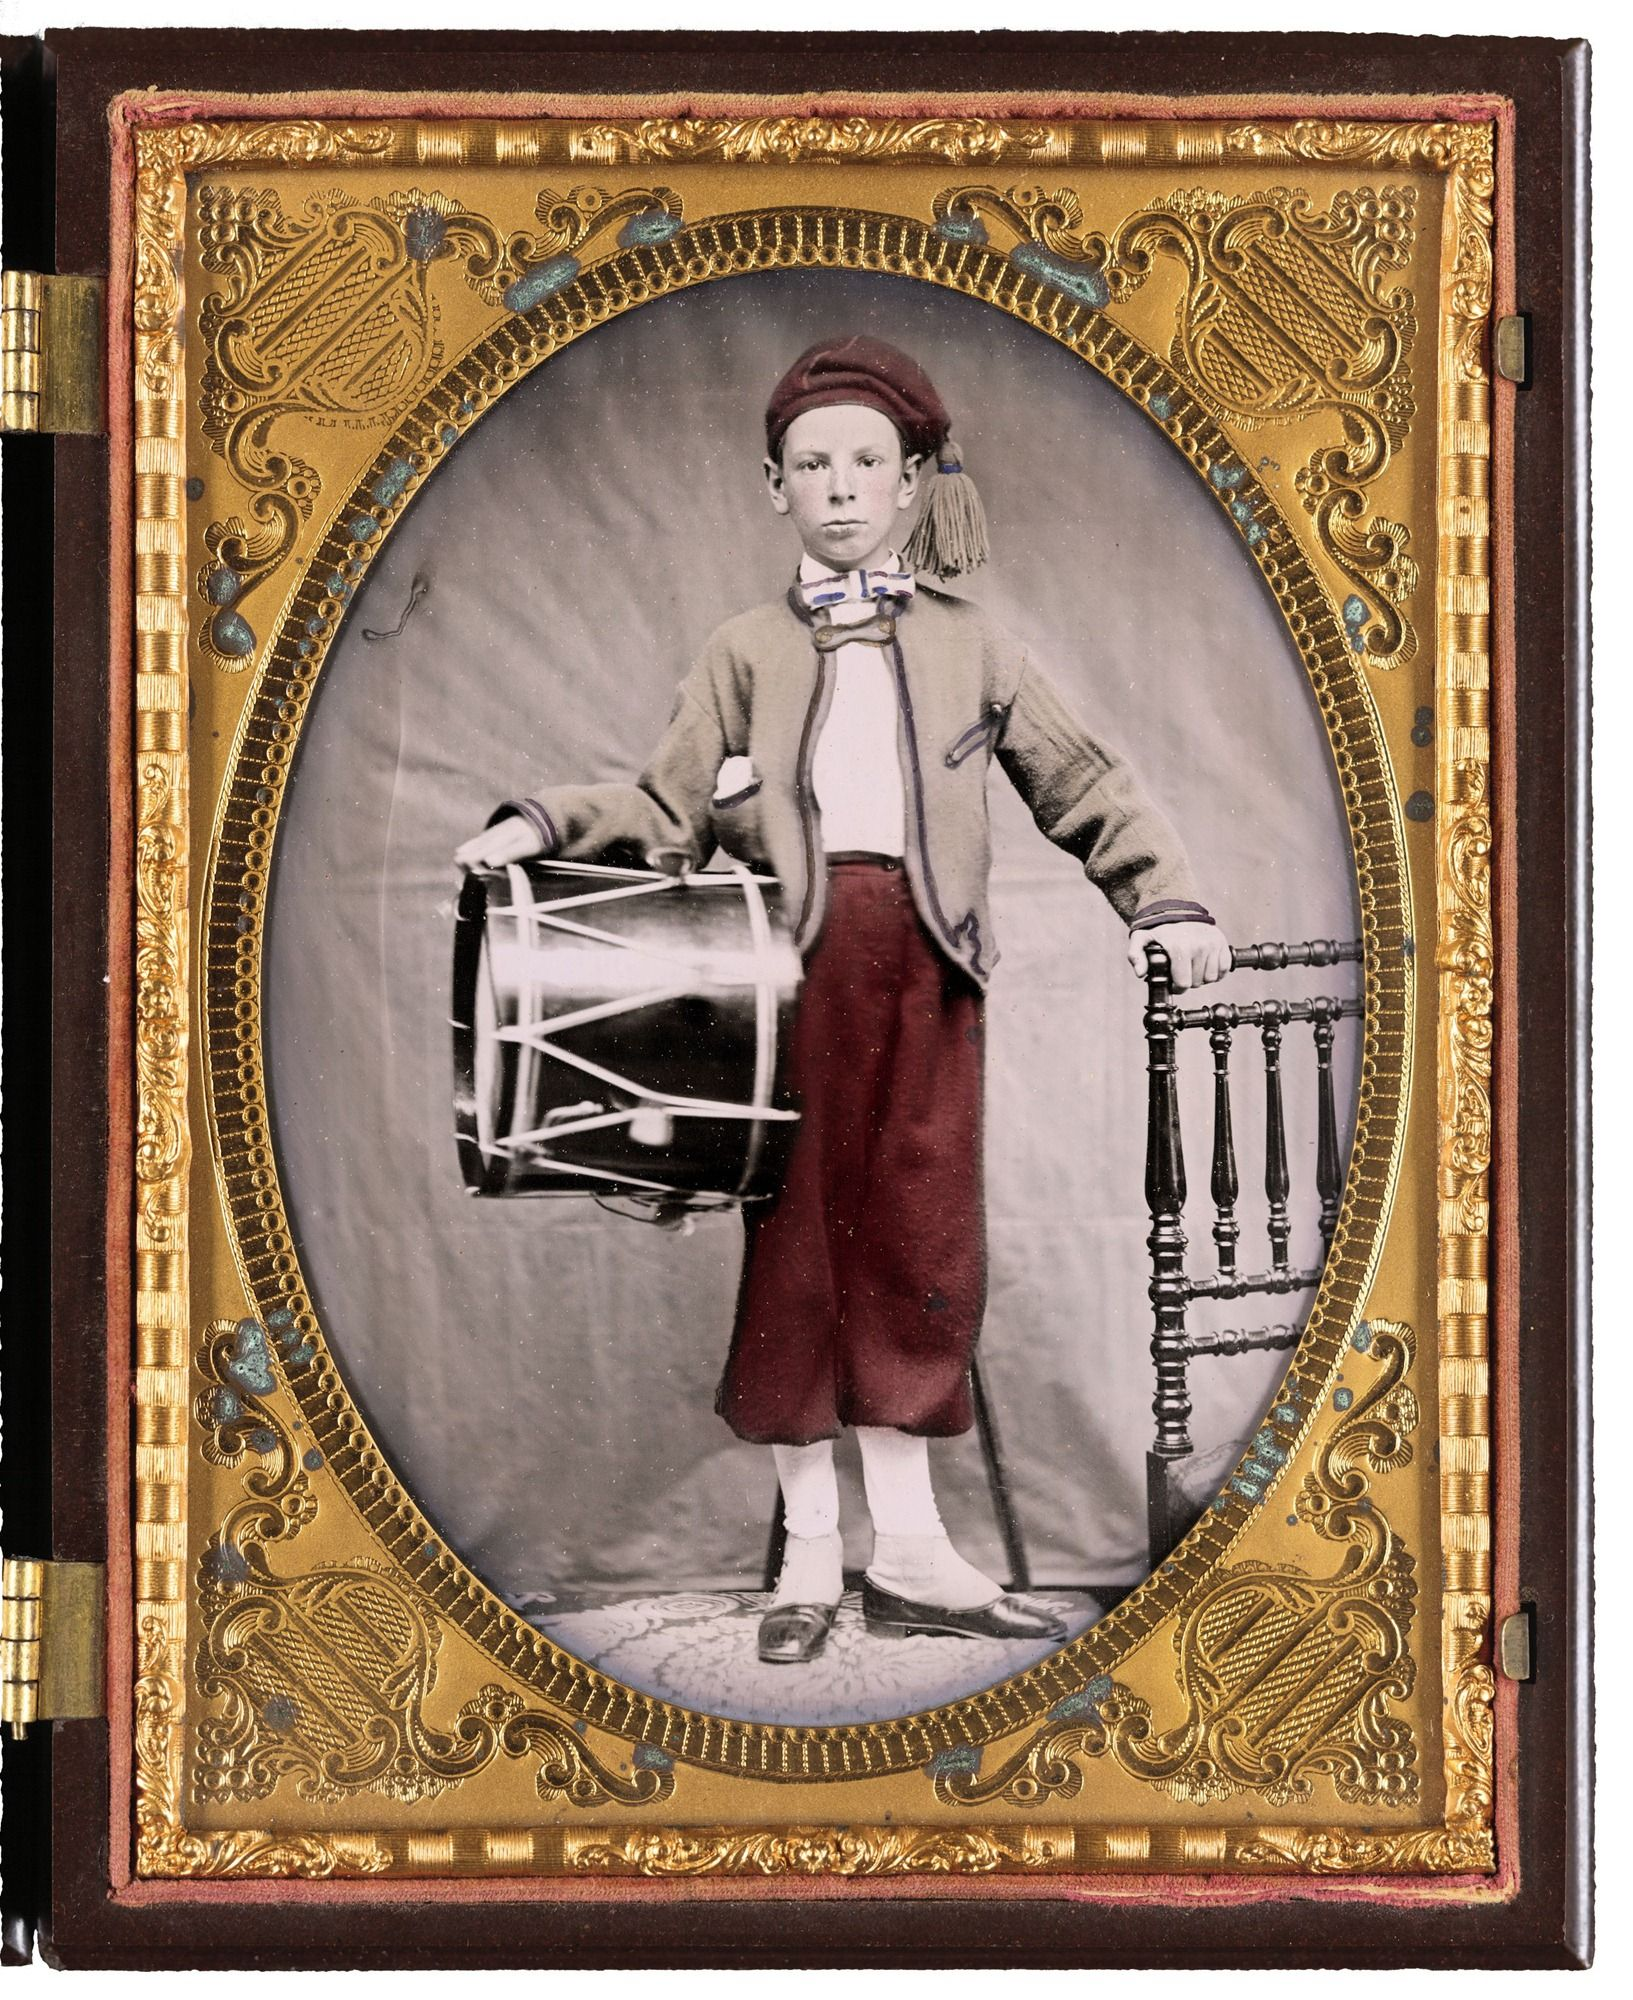 Unidentified boy in Union zouave uniform with drum.  Liljenquist Family Collection of Civil War Photographs; Ambrotype/Tintype photograph filing series; Library of Congress Prints and Photographs Division.